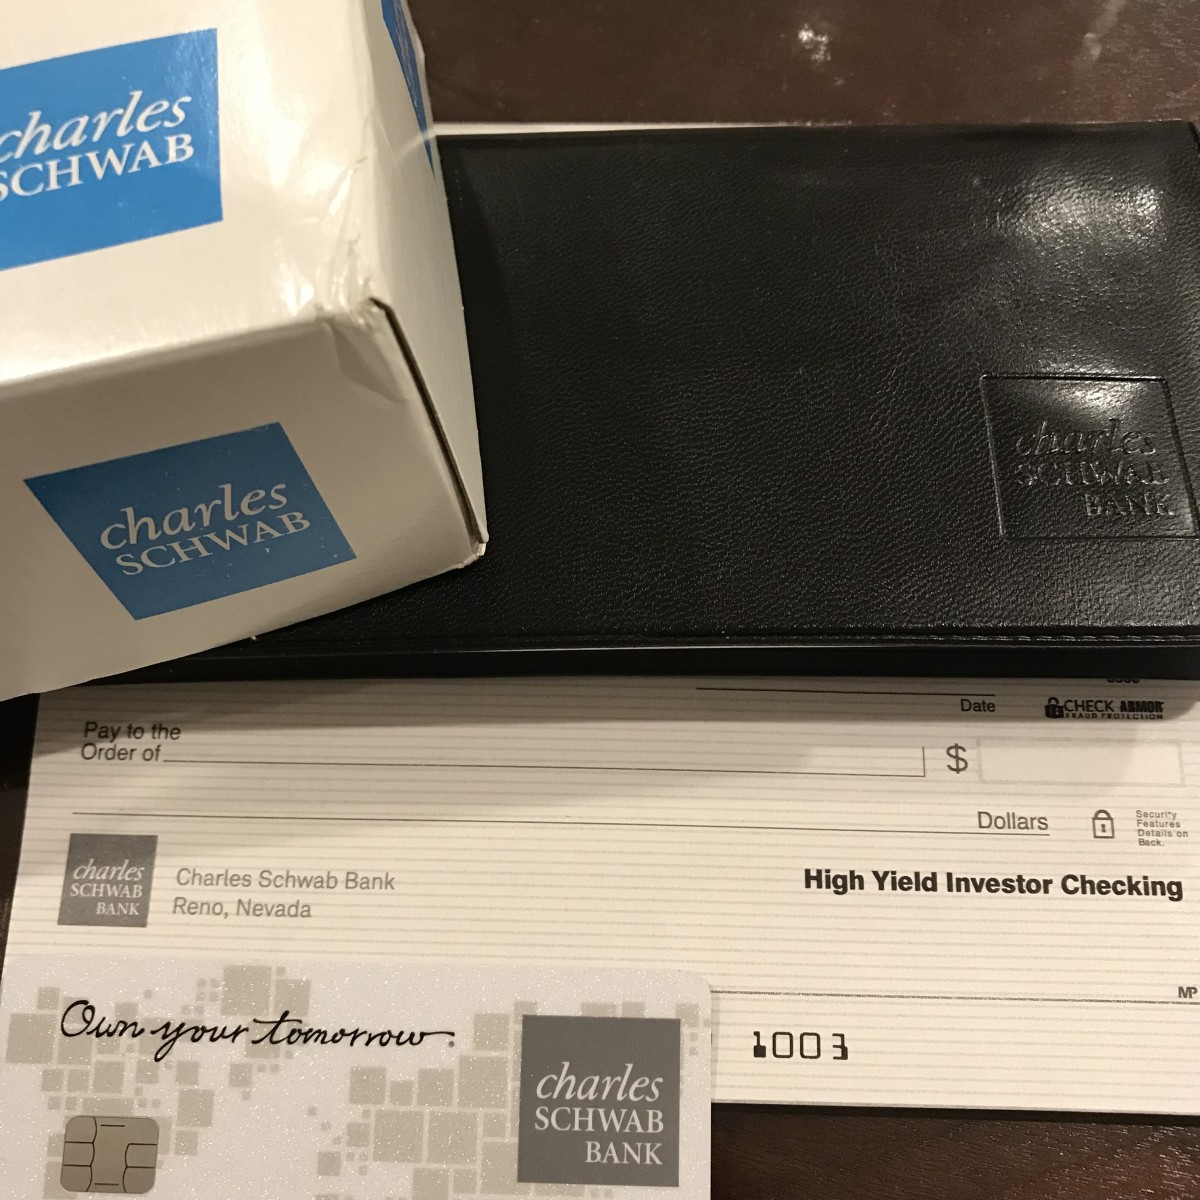 10 Reasons Why I Love the Charles Schwab Checking Account